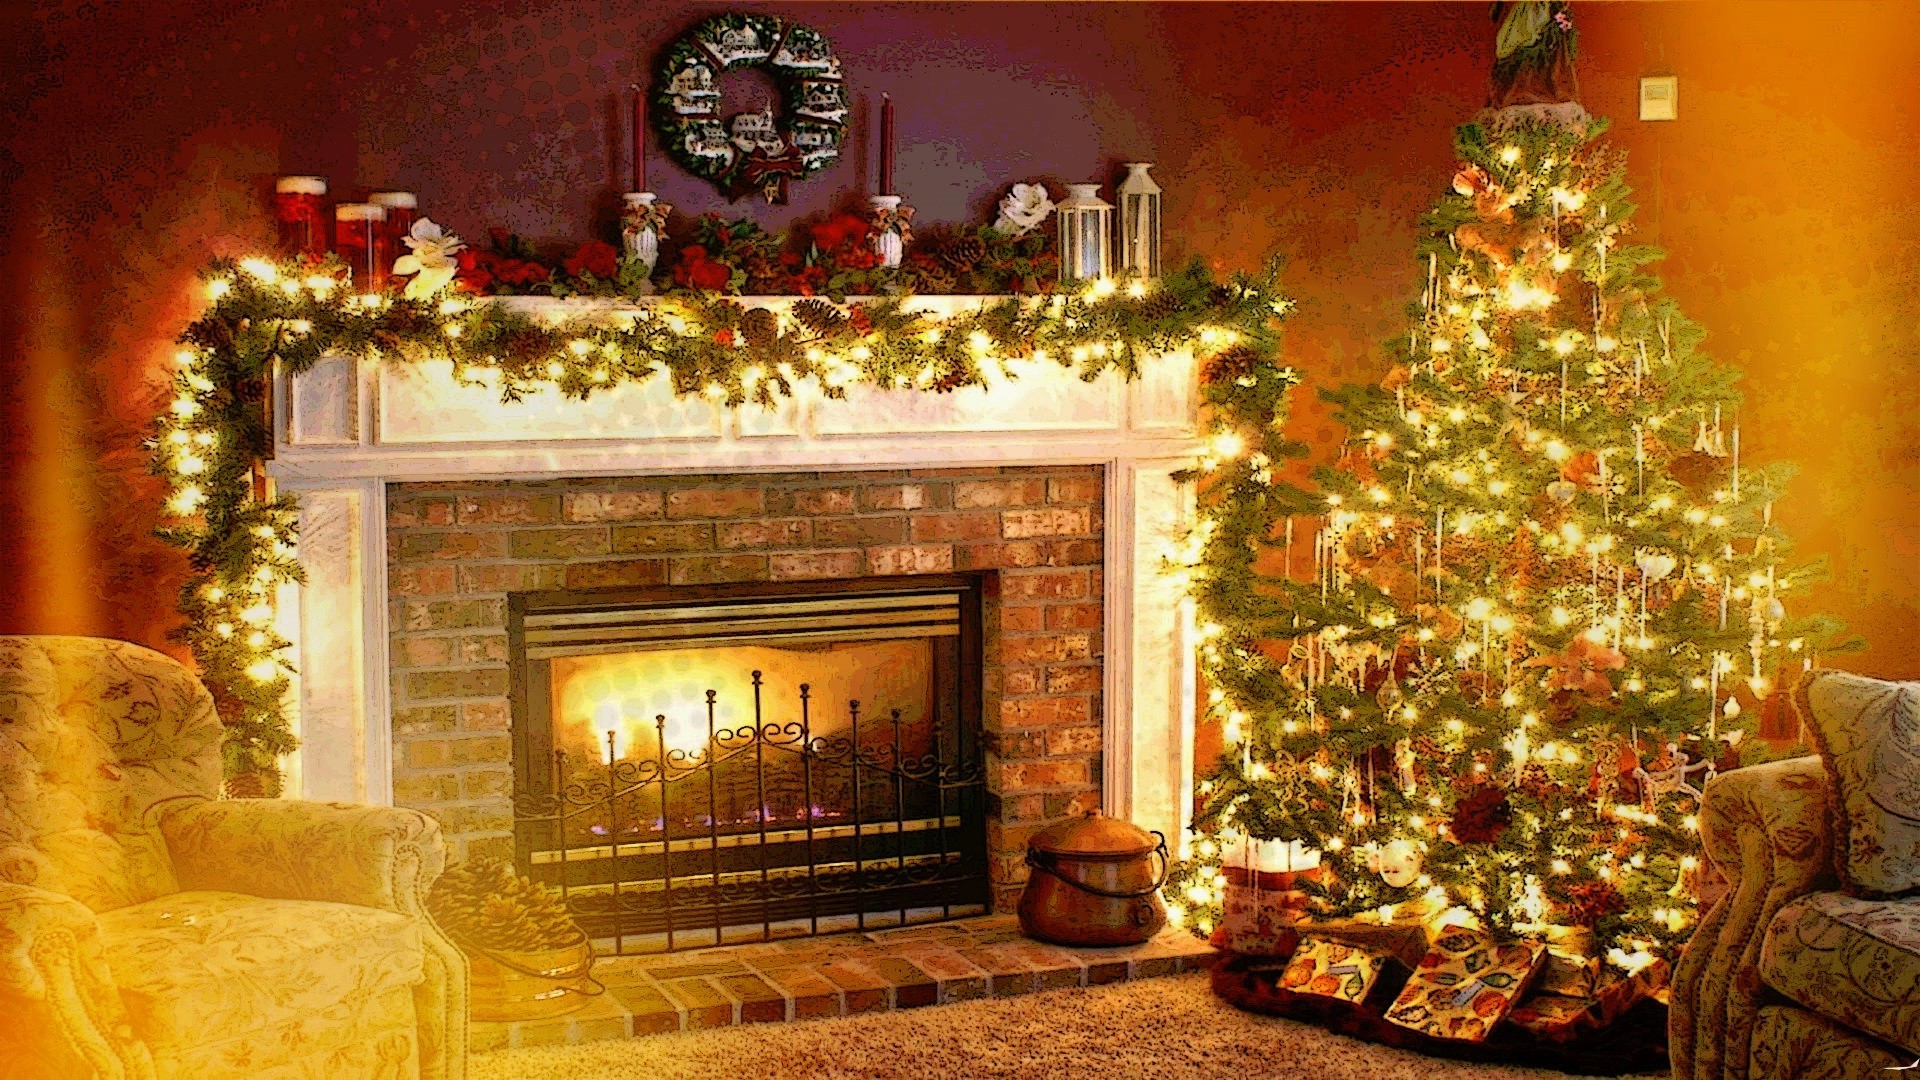 Res: 1920x1080, Christmas, Holiday, Fireplace, Interiors, Welcome Home Wallpapers HD /  Desktop and Mobile Backgrounds